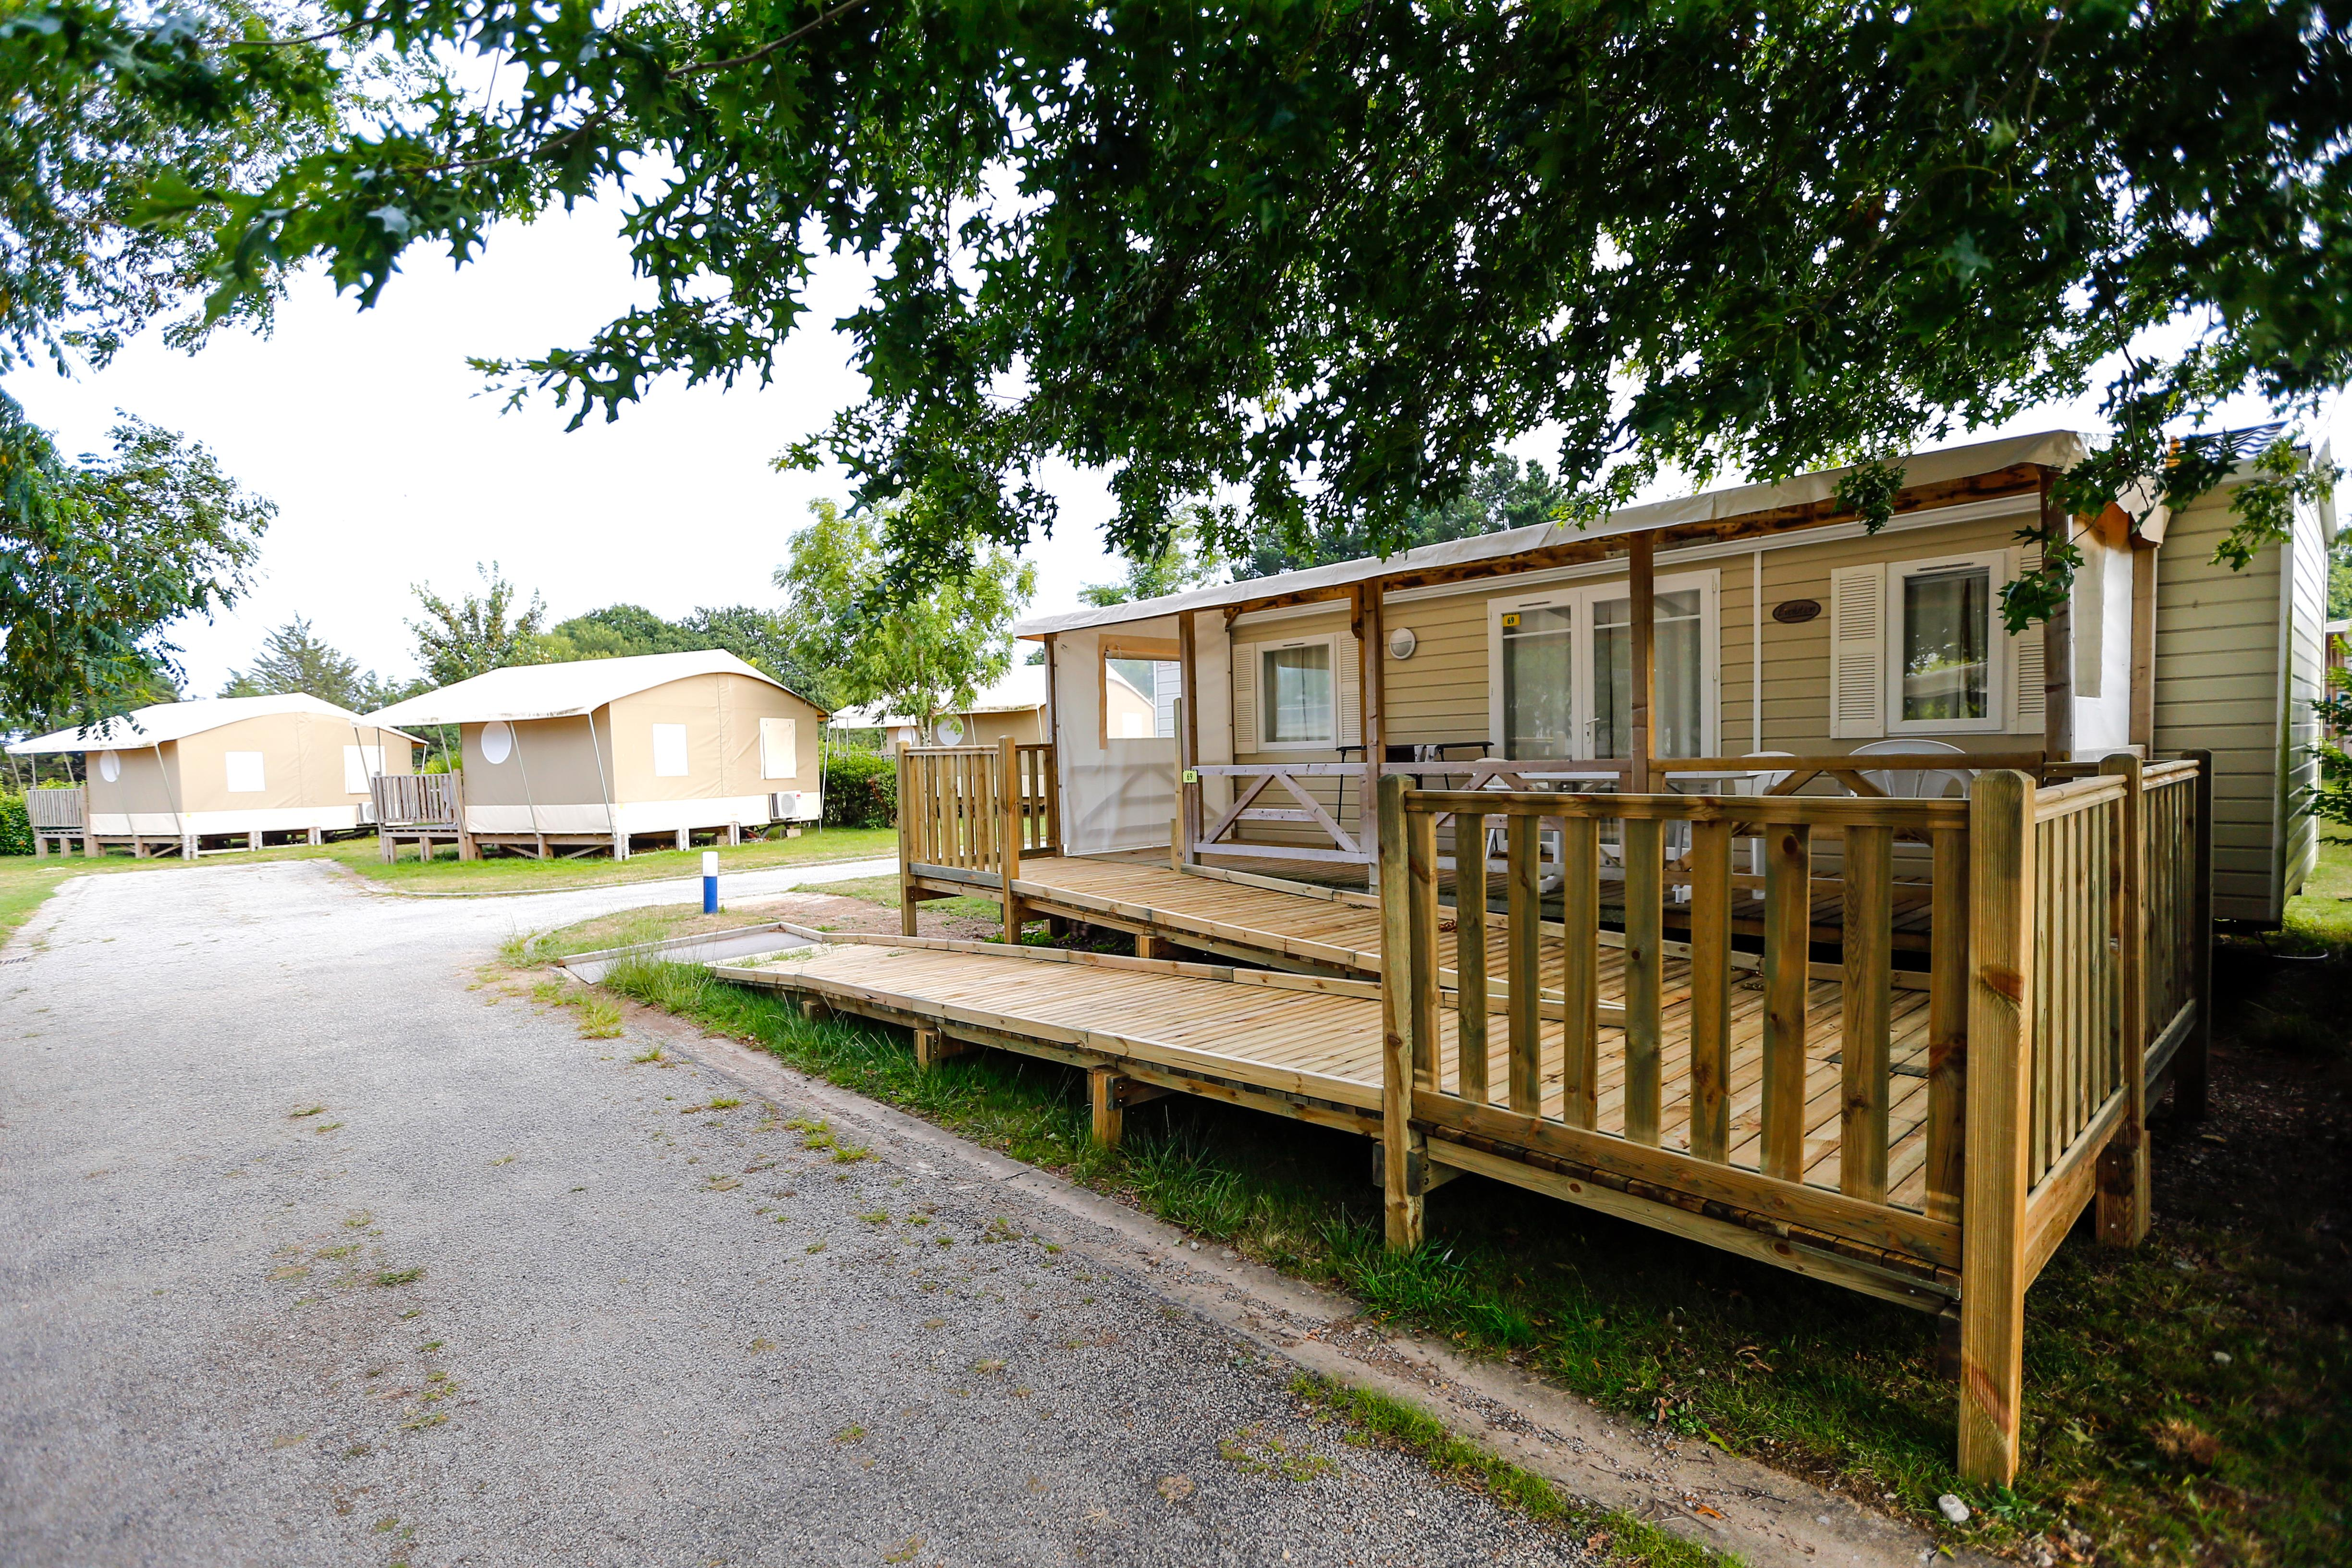 Location - Mobil-Home Pmr 2 Chambres - Camping Campéole Clairefontaine